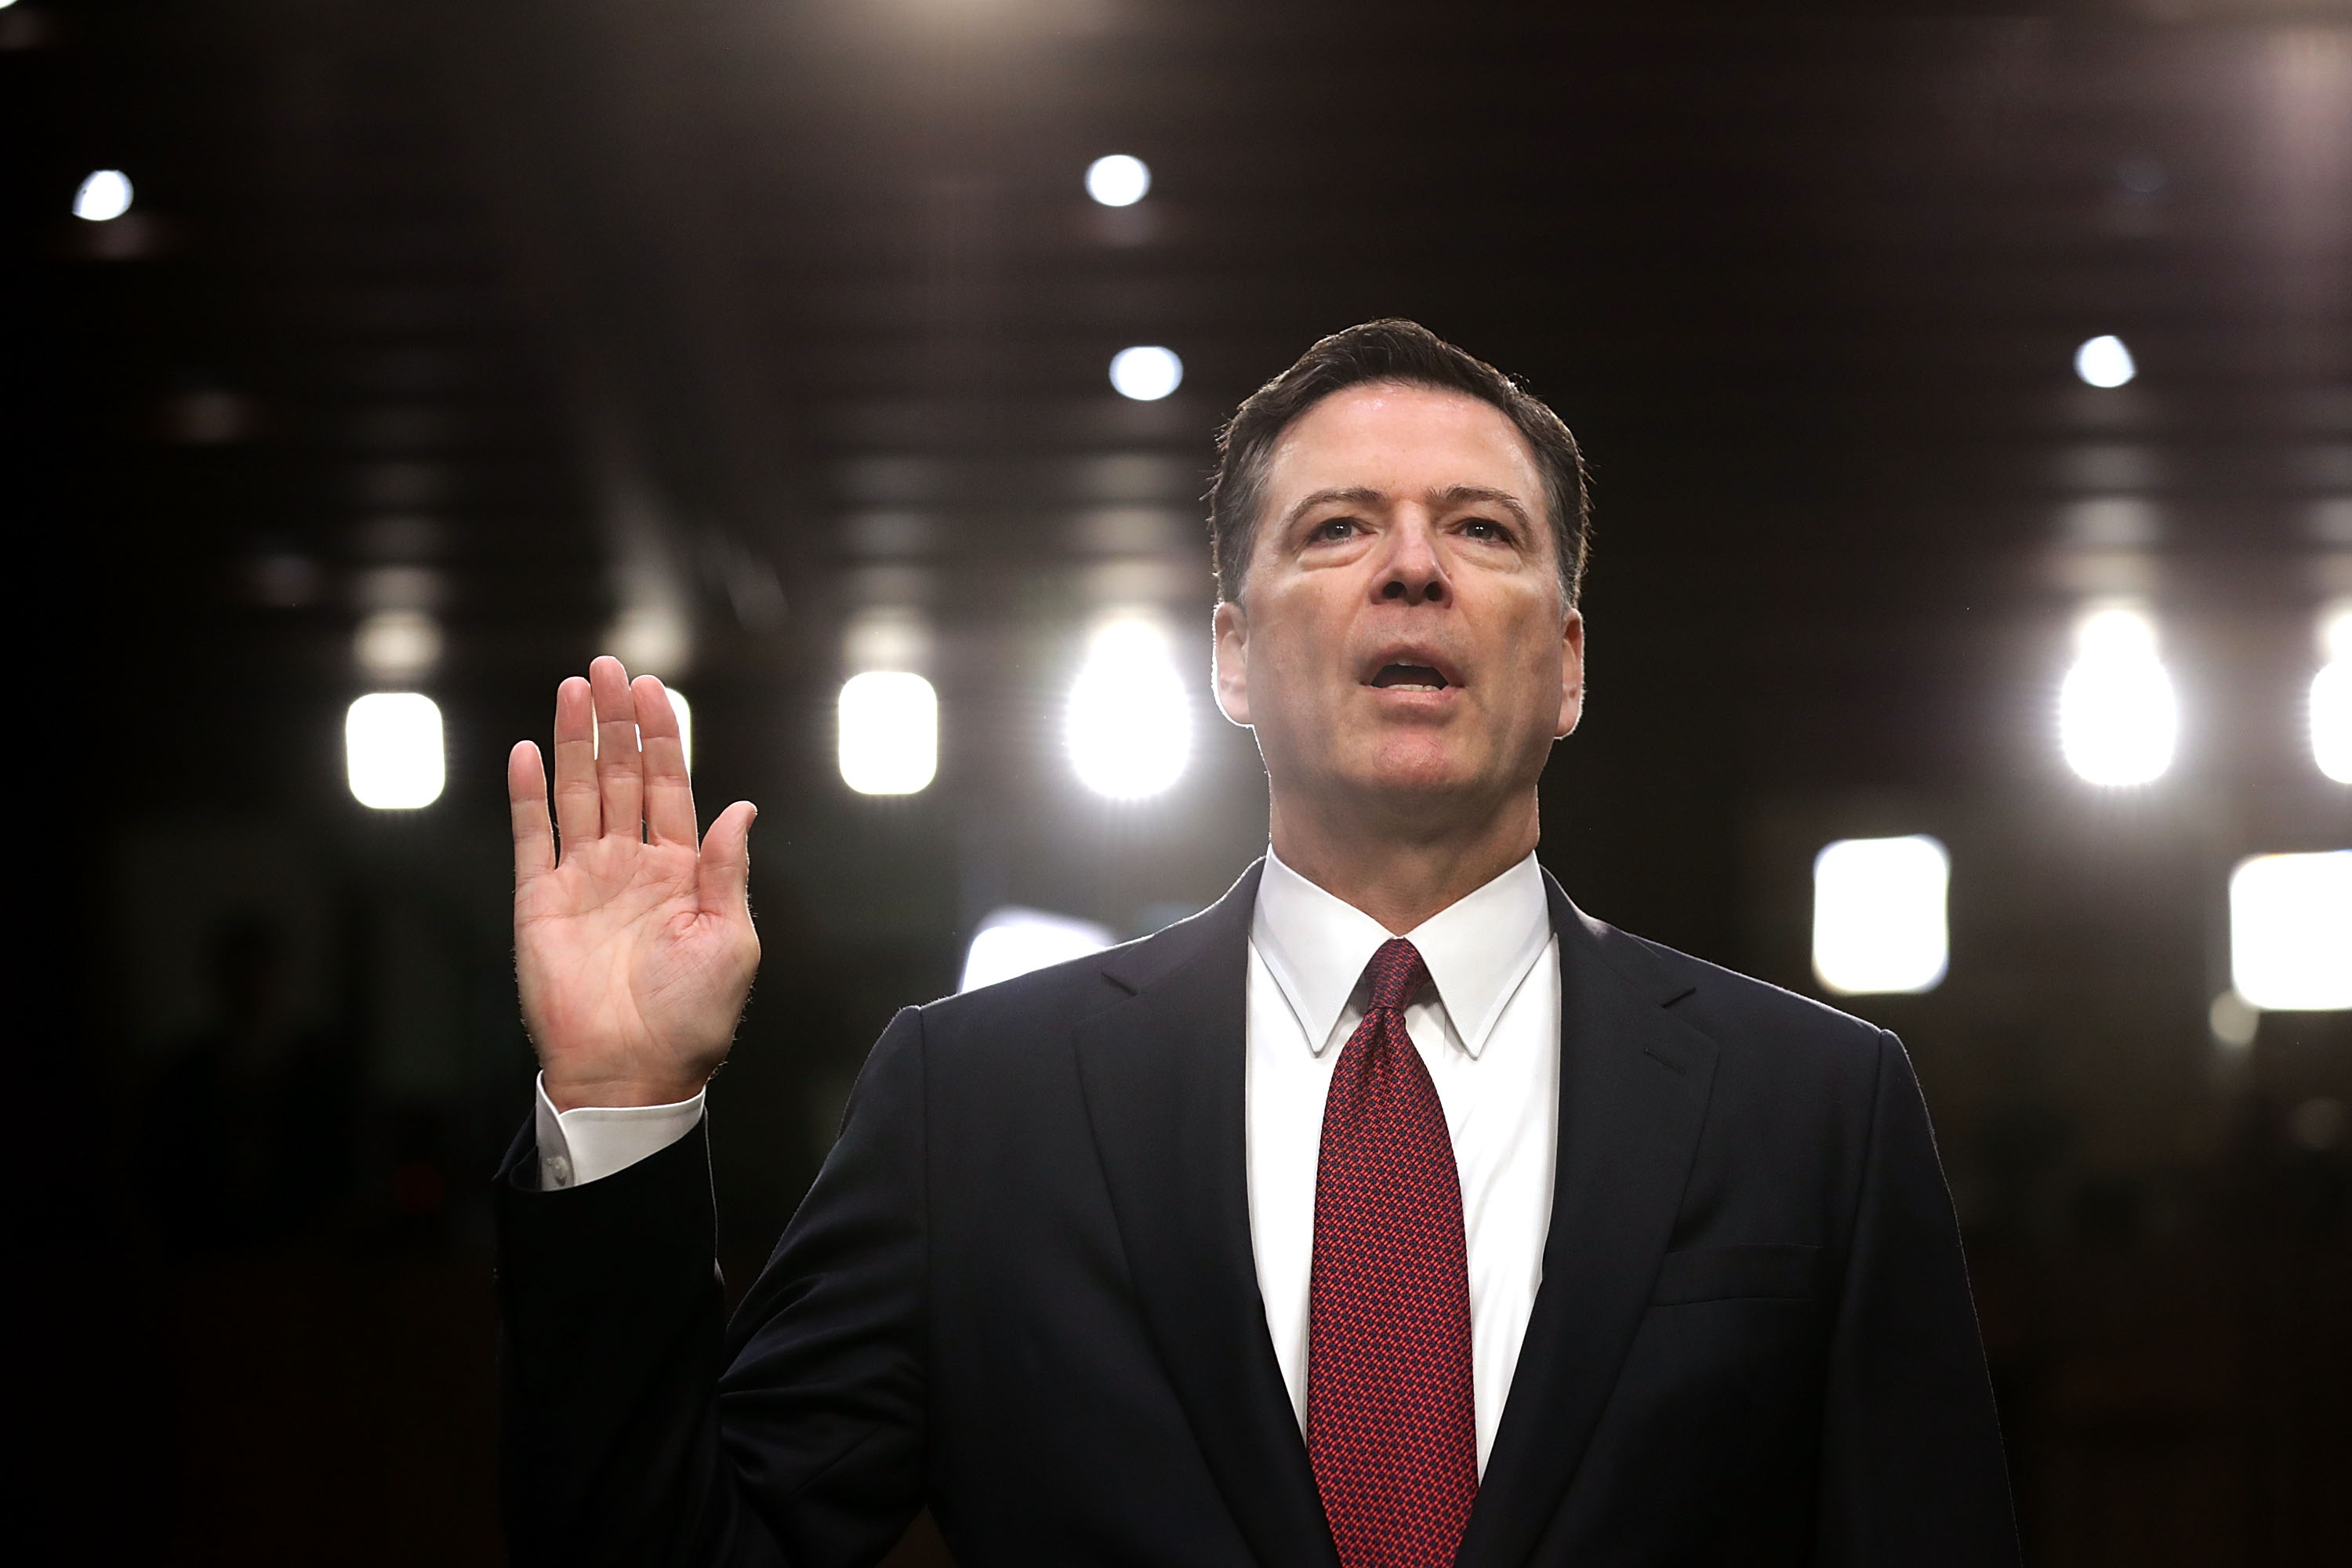 Former FBI Director James Comey is sworn in before giving testimony to the Senate Intelligence Committee on June 8, 2017. (Chip Somodevilla/Getty Images)